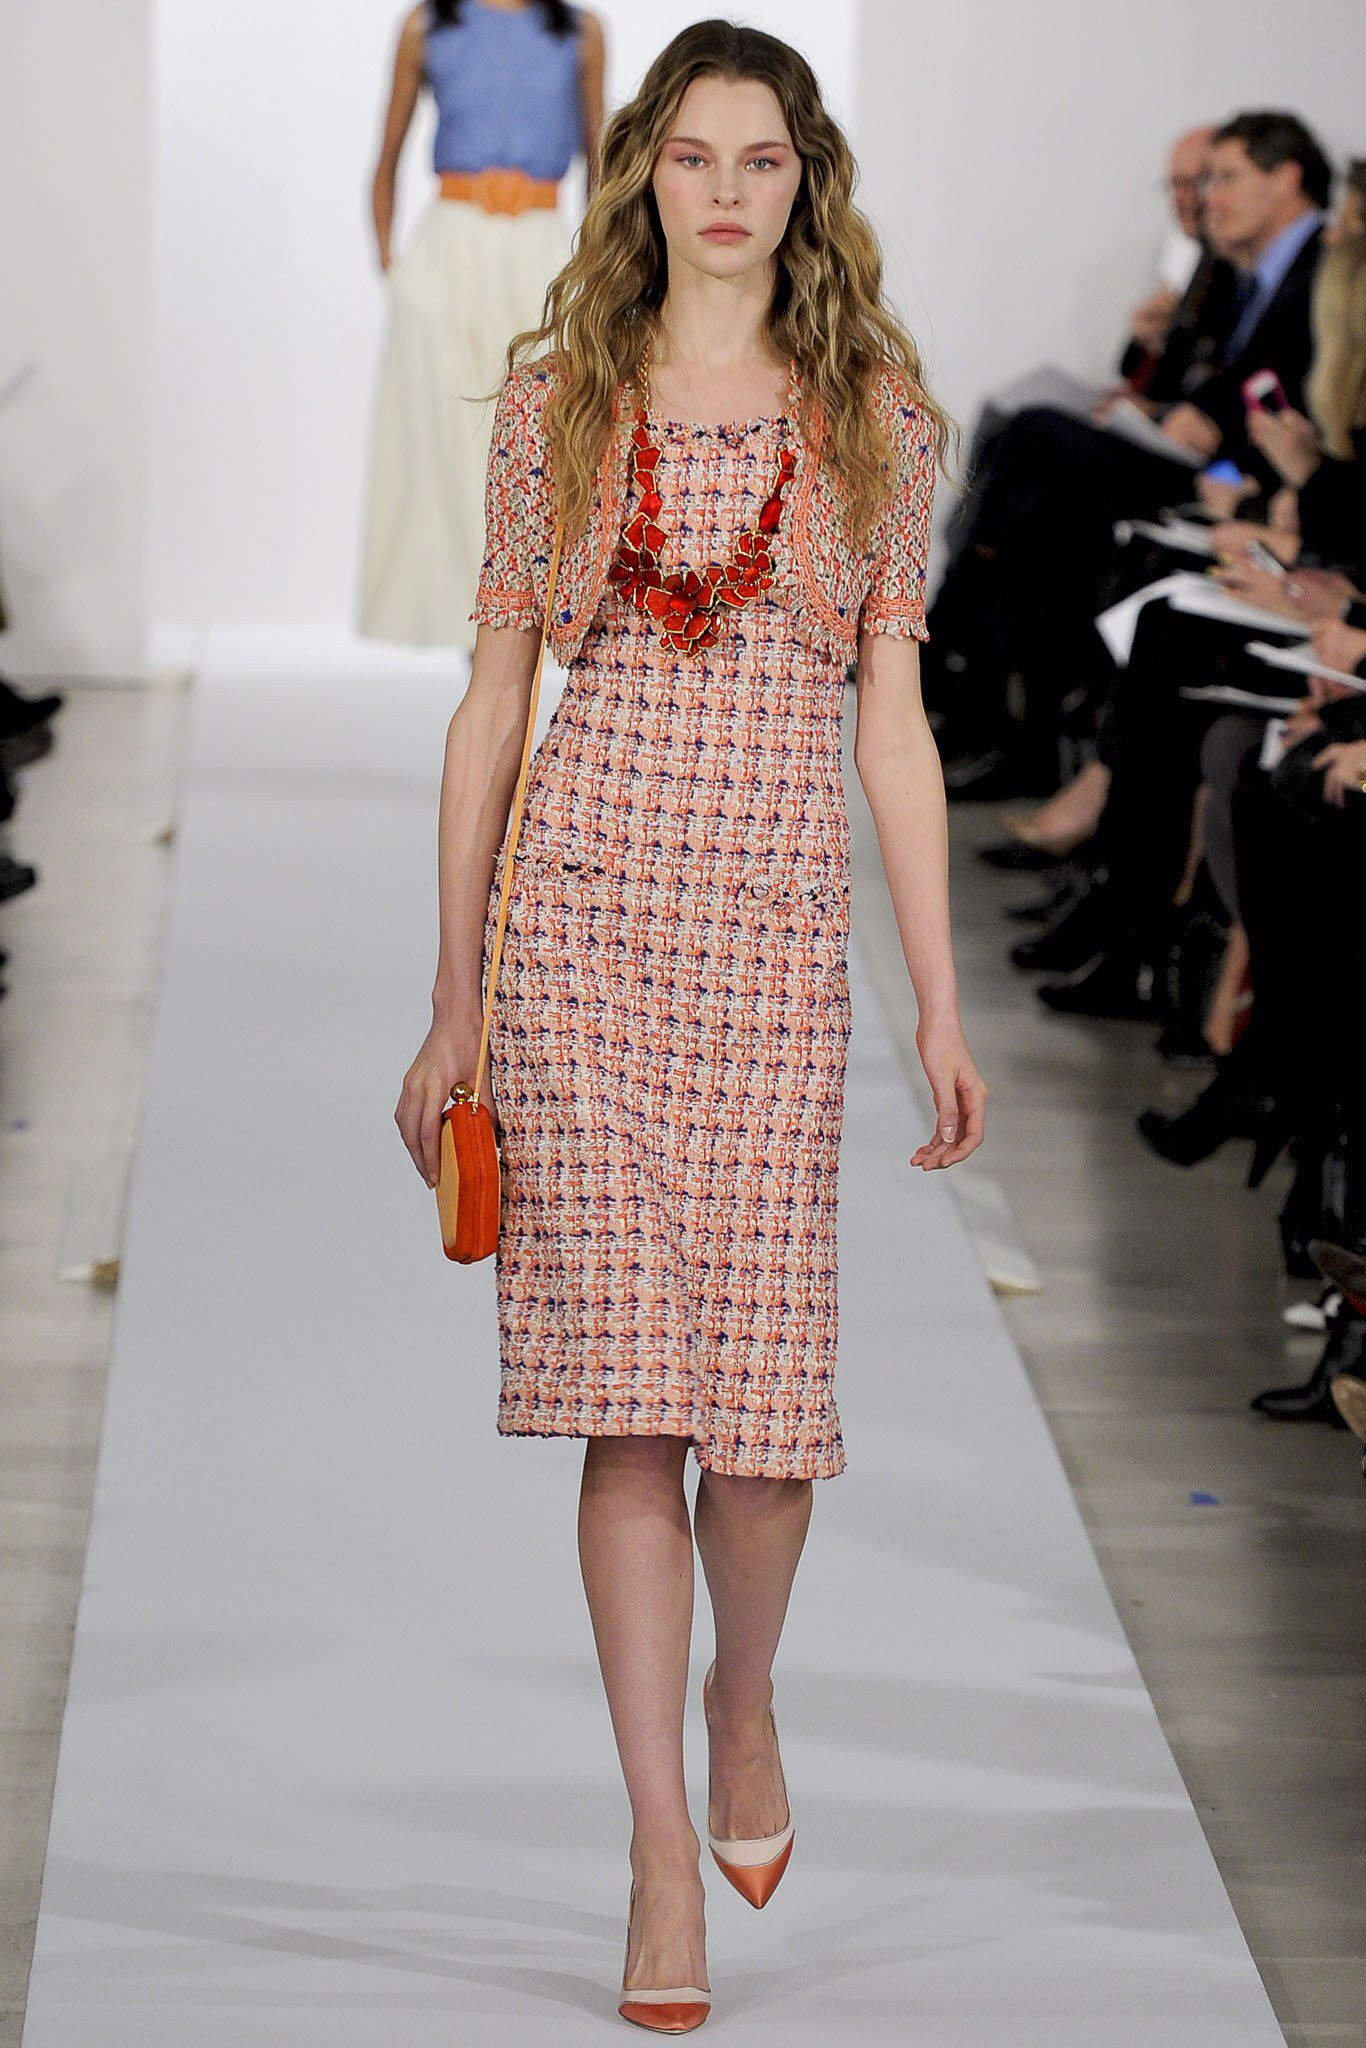 See the complete Oscar de la Renta Pre-Fall 2013 collection.